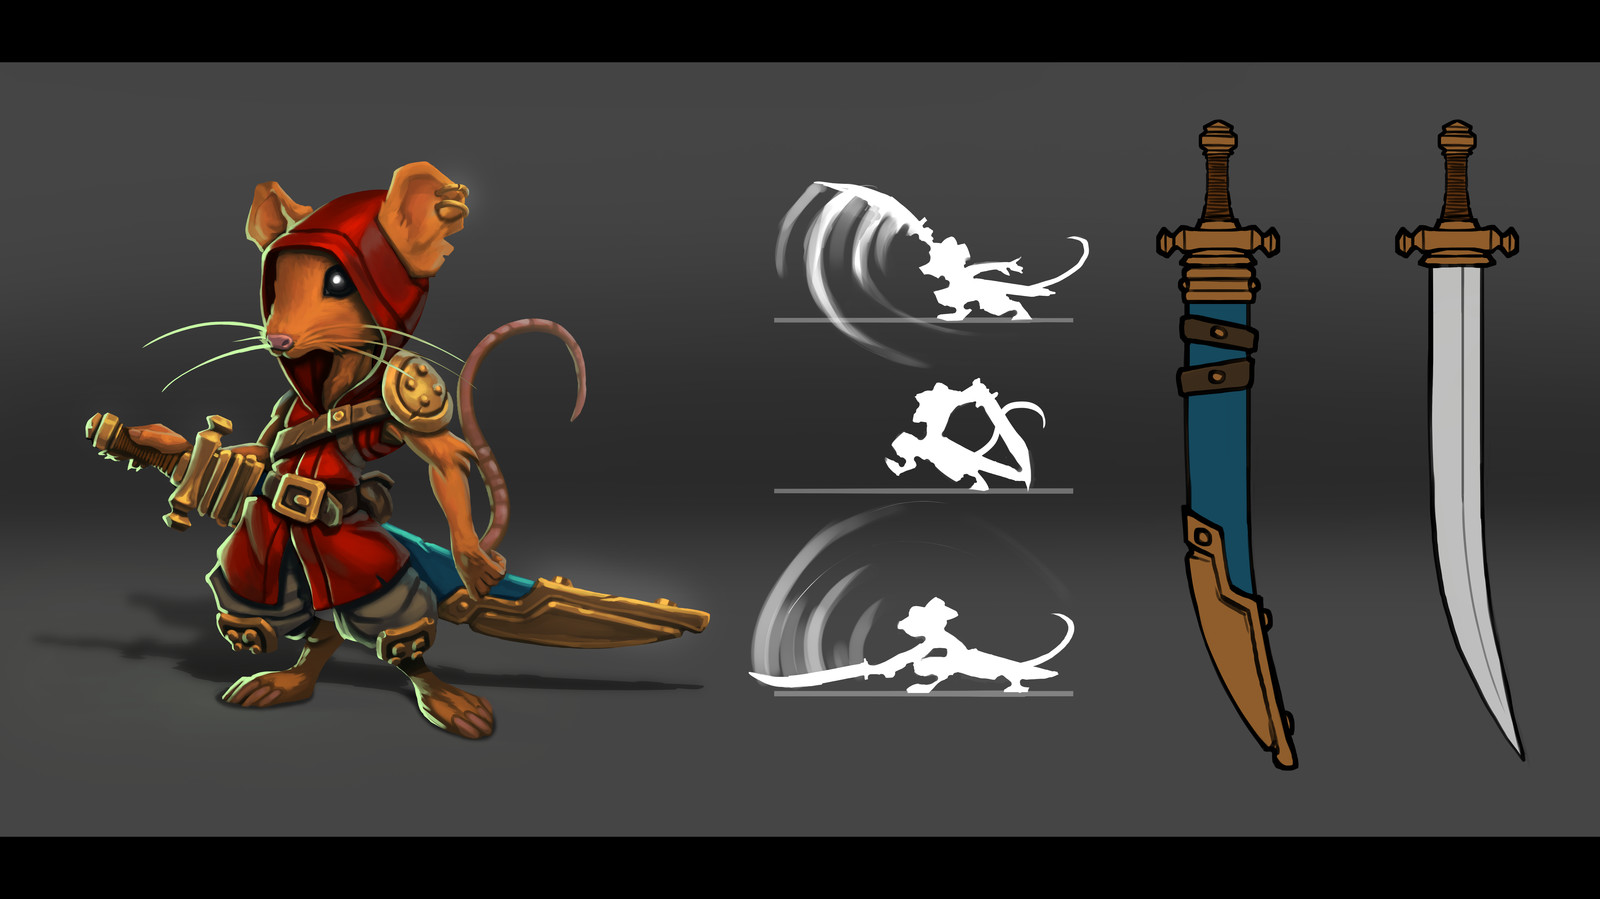 Concept Mouse Fighter